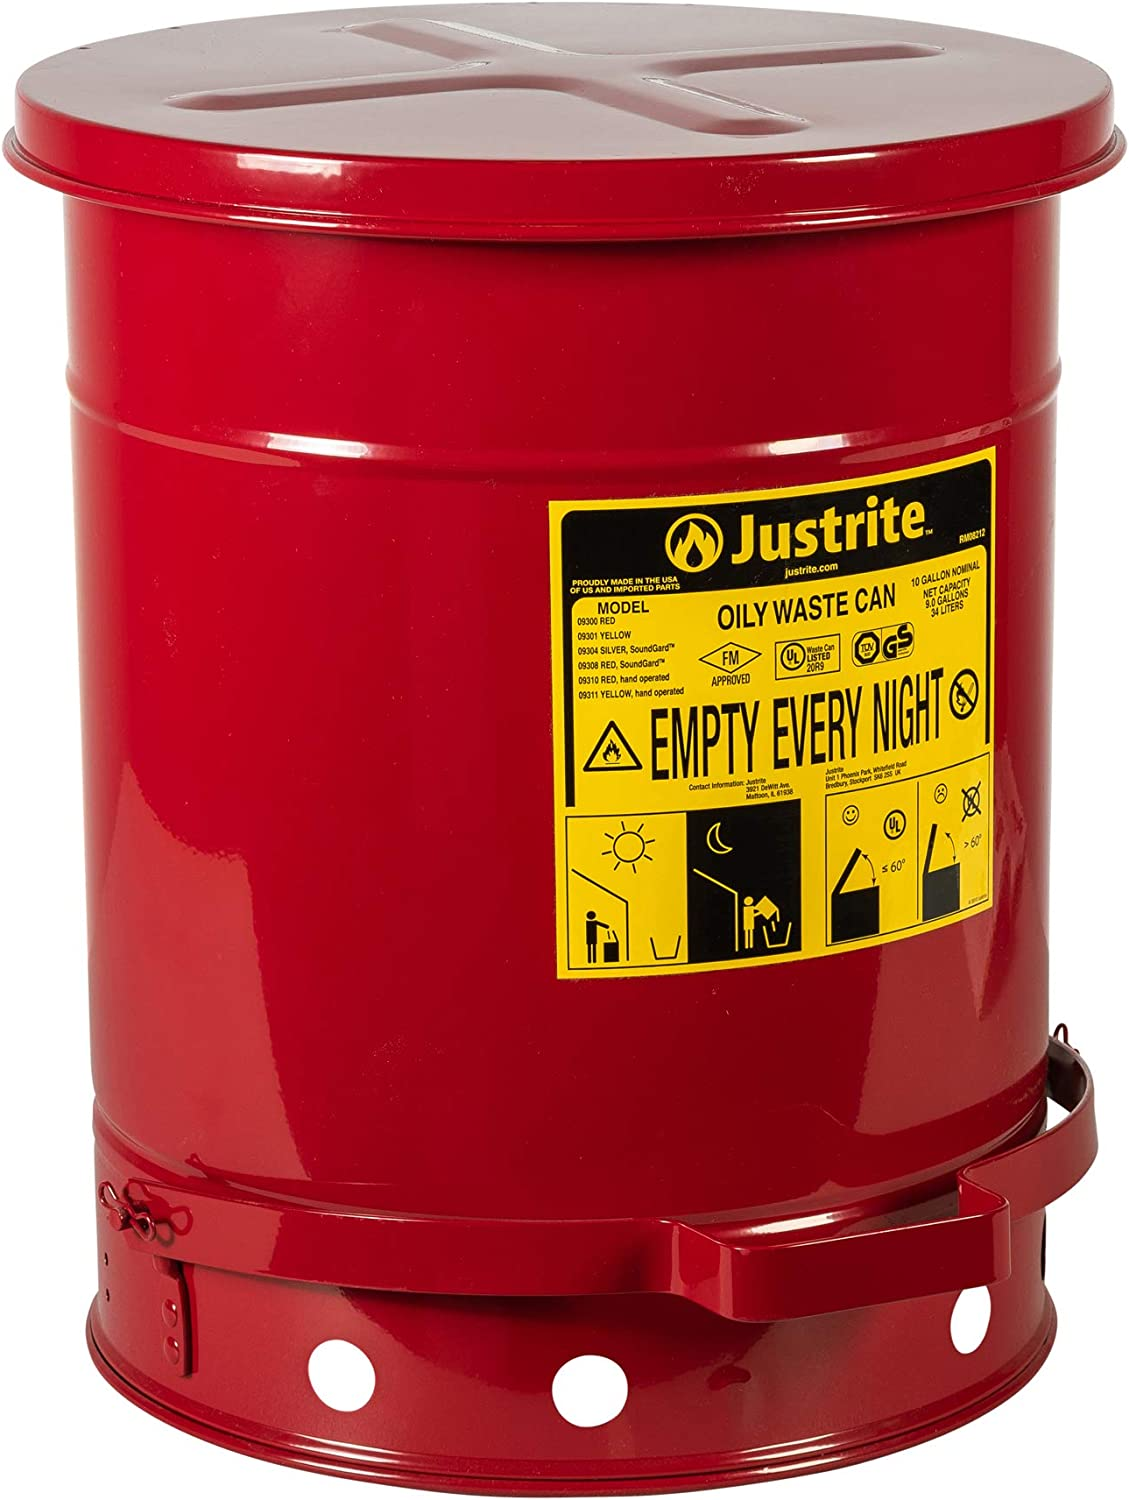 Justrite 09300, Galvanized-Steel Safety cans, for Oily Waste, Red, Foot Operated Cover, Raised, Ventilated Bottom, Reinforced Ribs, Self-Closing, UL Listed, FM Approved, Capacity-10 gal. (38L)